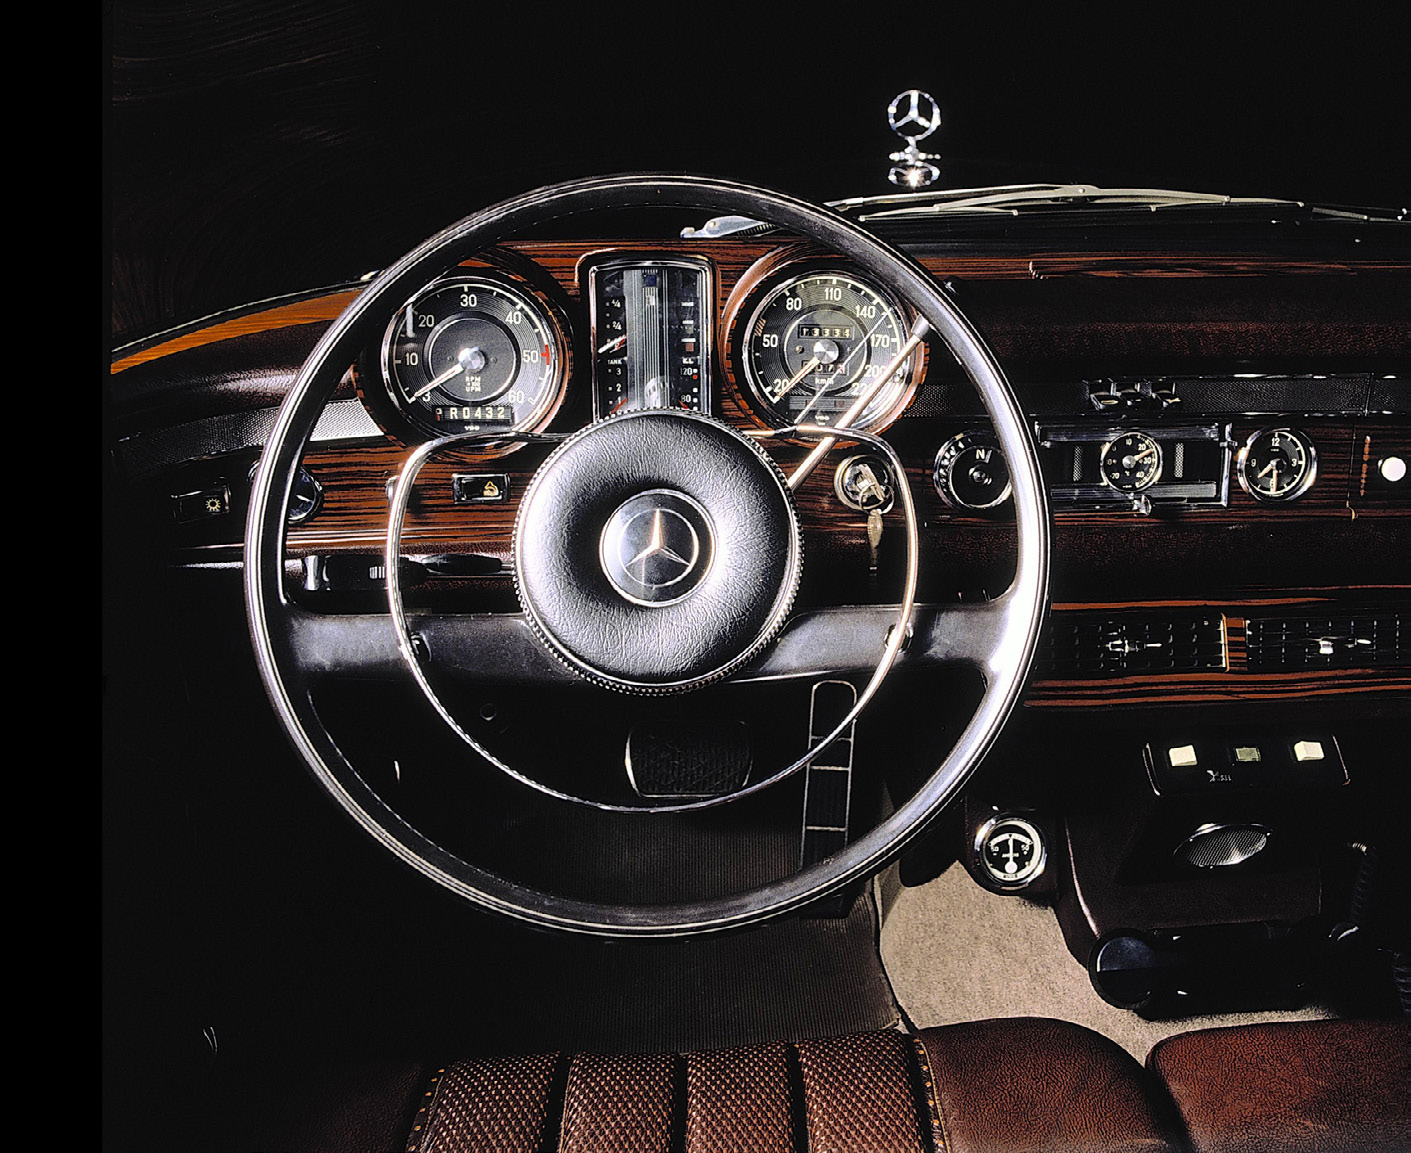 Photo credit: Pictures Of Car Dashboards Design tends to age badly if it succumbs to a trend.